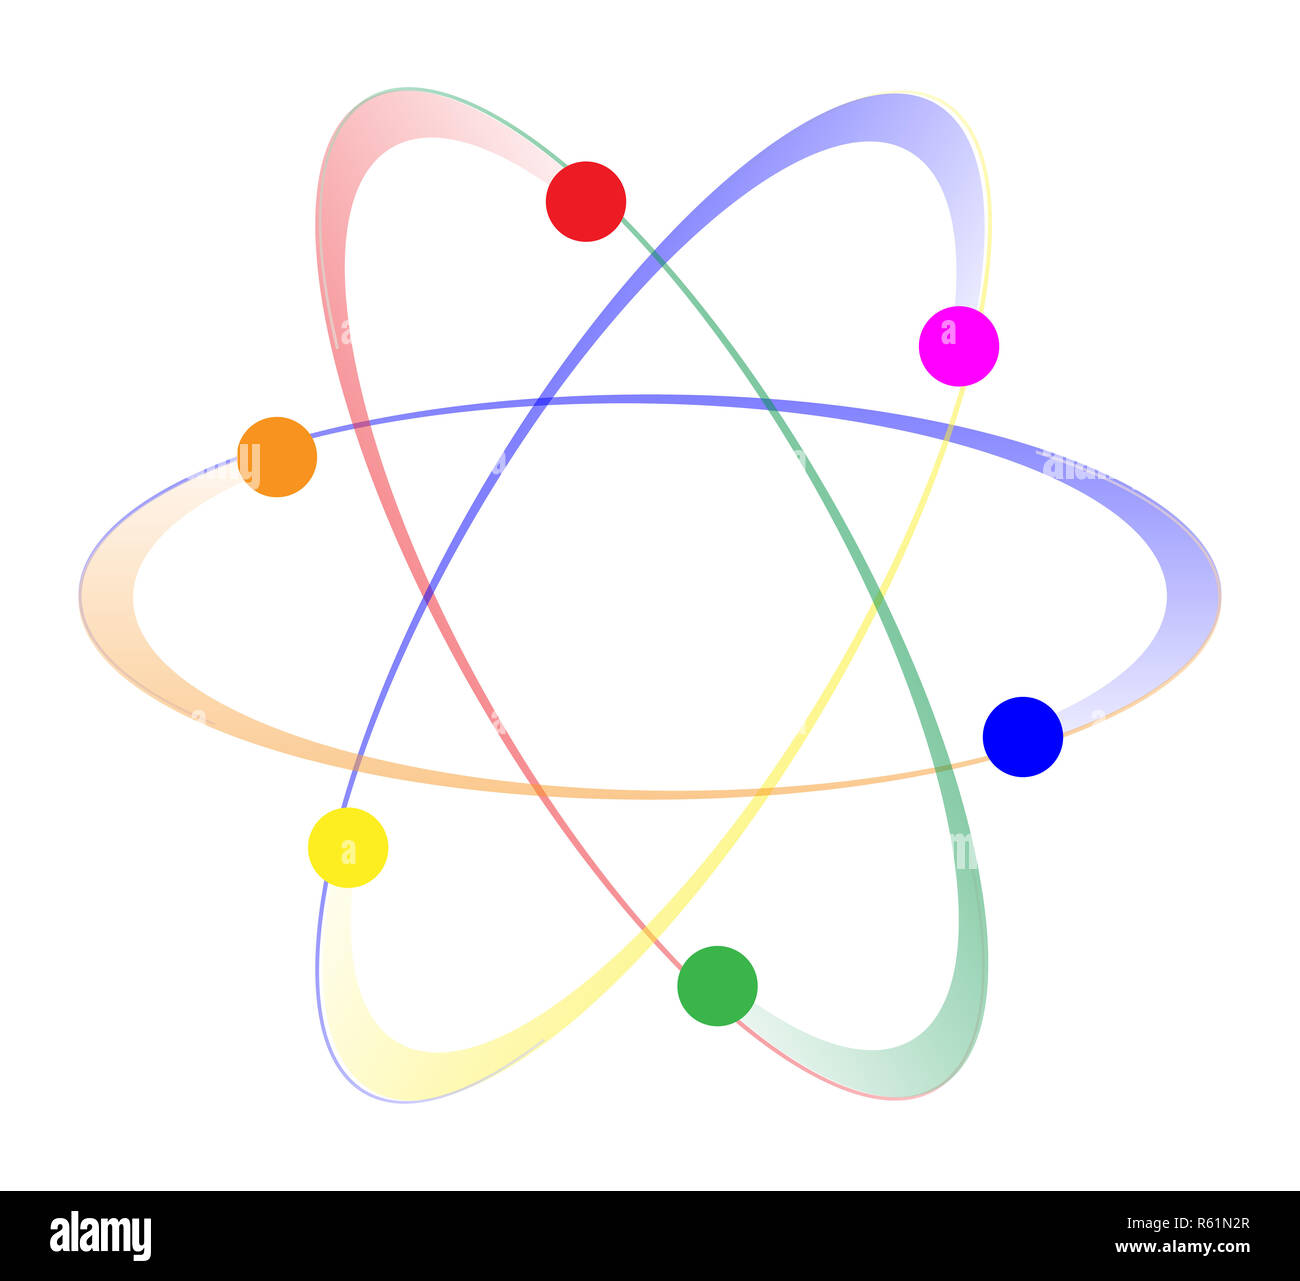 LGBT Whirling Atoms - Stock Image